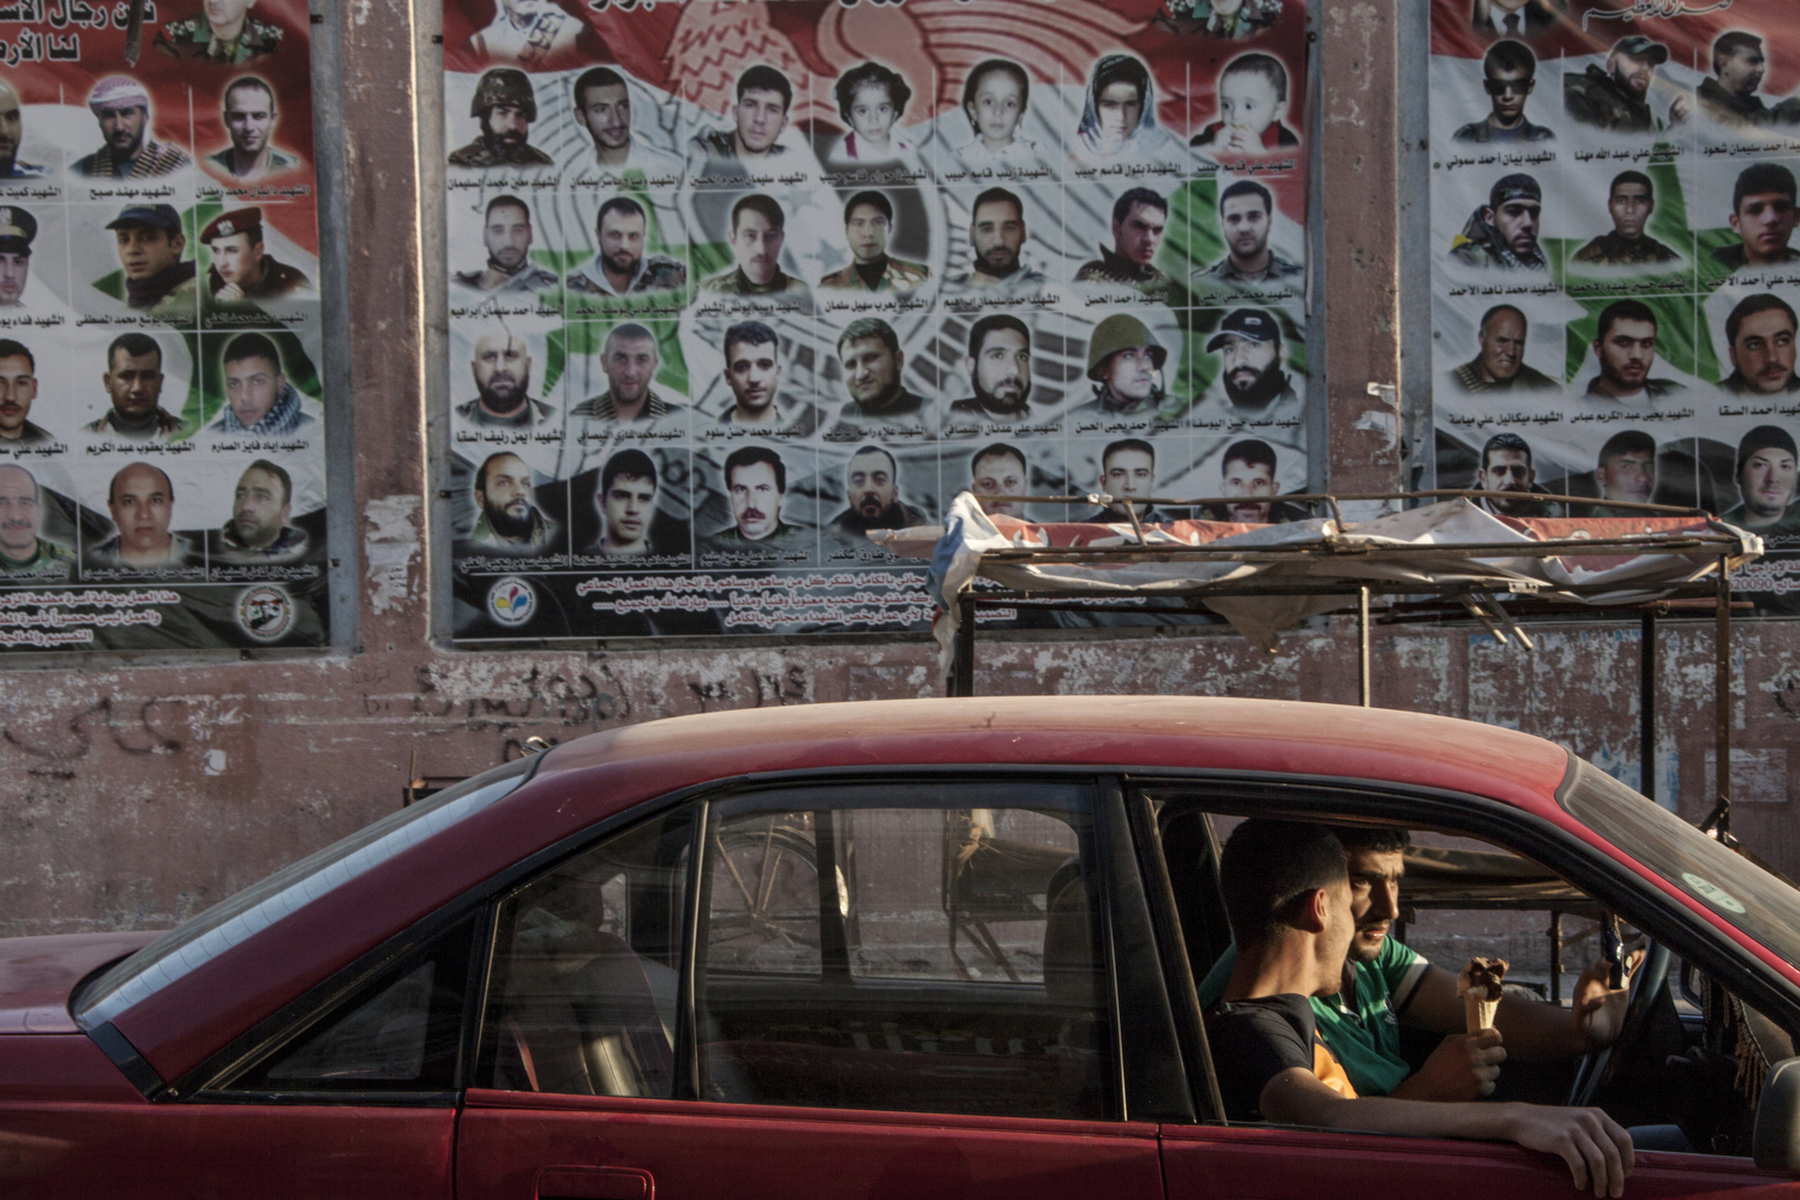 Damascus, 2015, A car with two young men in it is parked next to the so-called Martyrs Garden in the Alawi-dominated neighborhood of al-Zahra in Homs. On the wall behing, thousands of pictures of the Syrian Army soldiers and members of the National Defence who were killed.